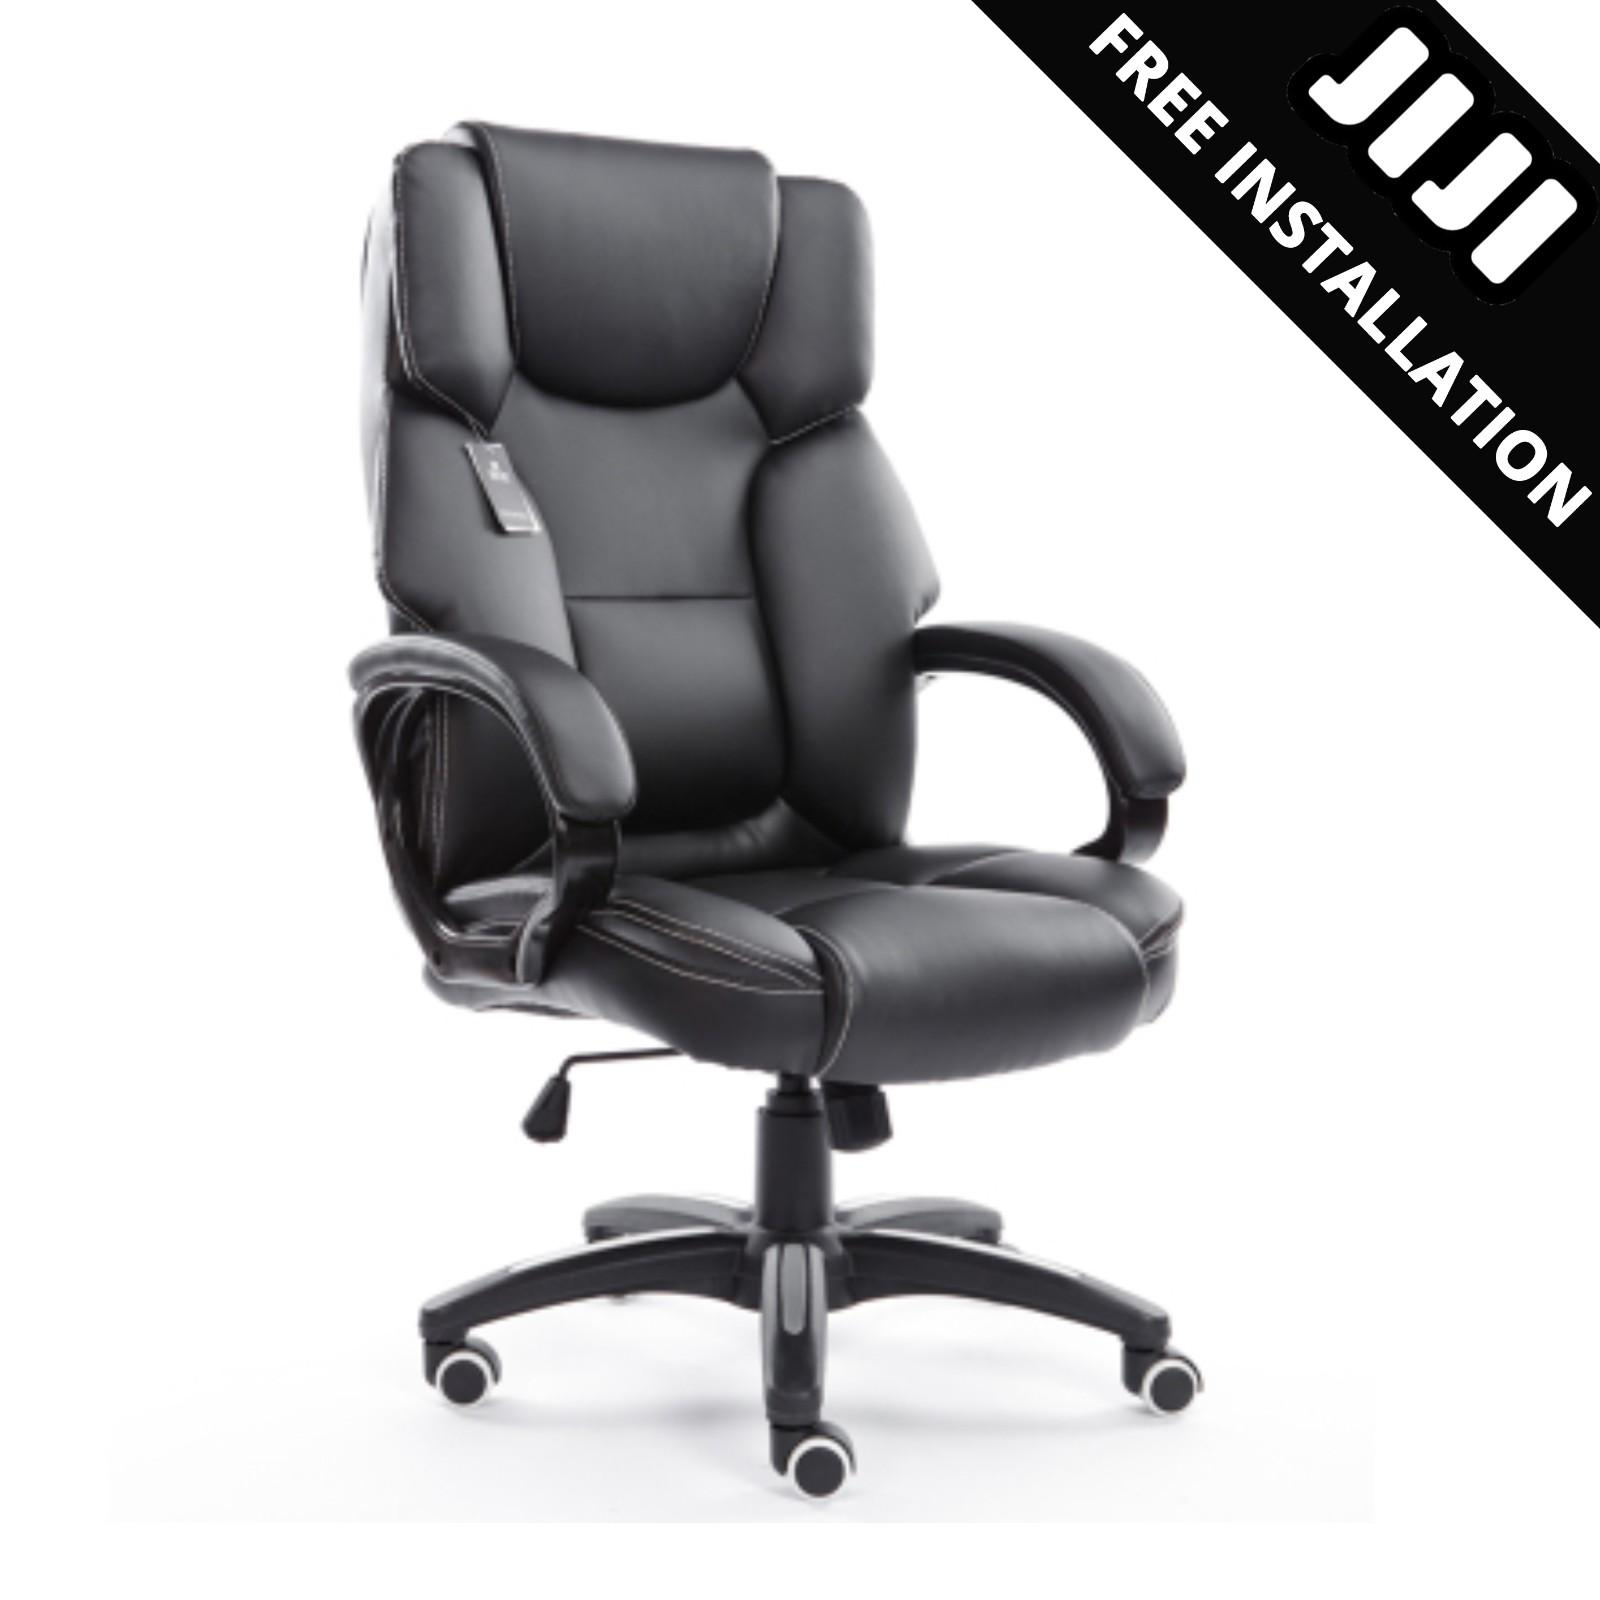 Massage Office Chair Jiji Dreamwave 8 Points Massage Office Chair Free Installation Compact Massage Chairs Latest Technology Blood Circulation Free 12 Months